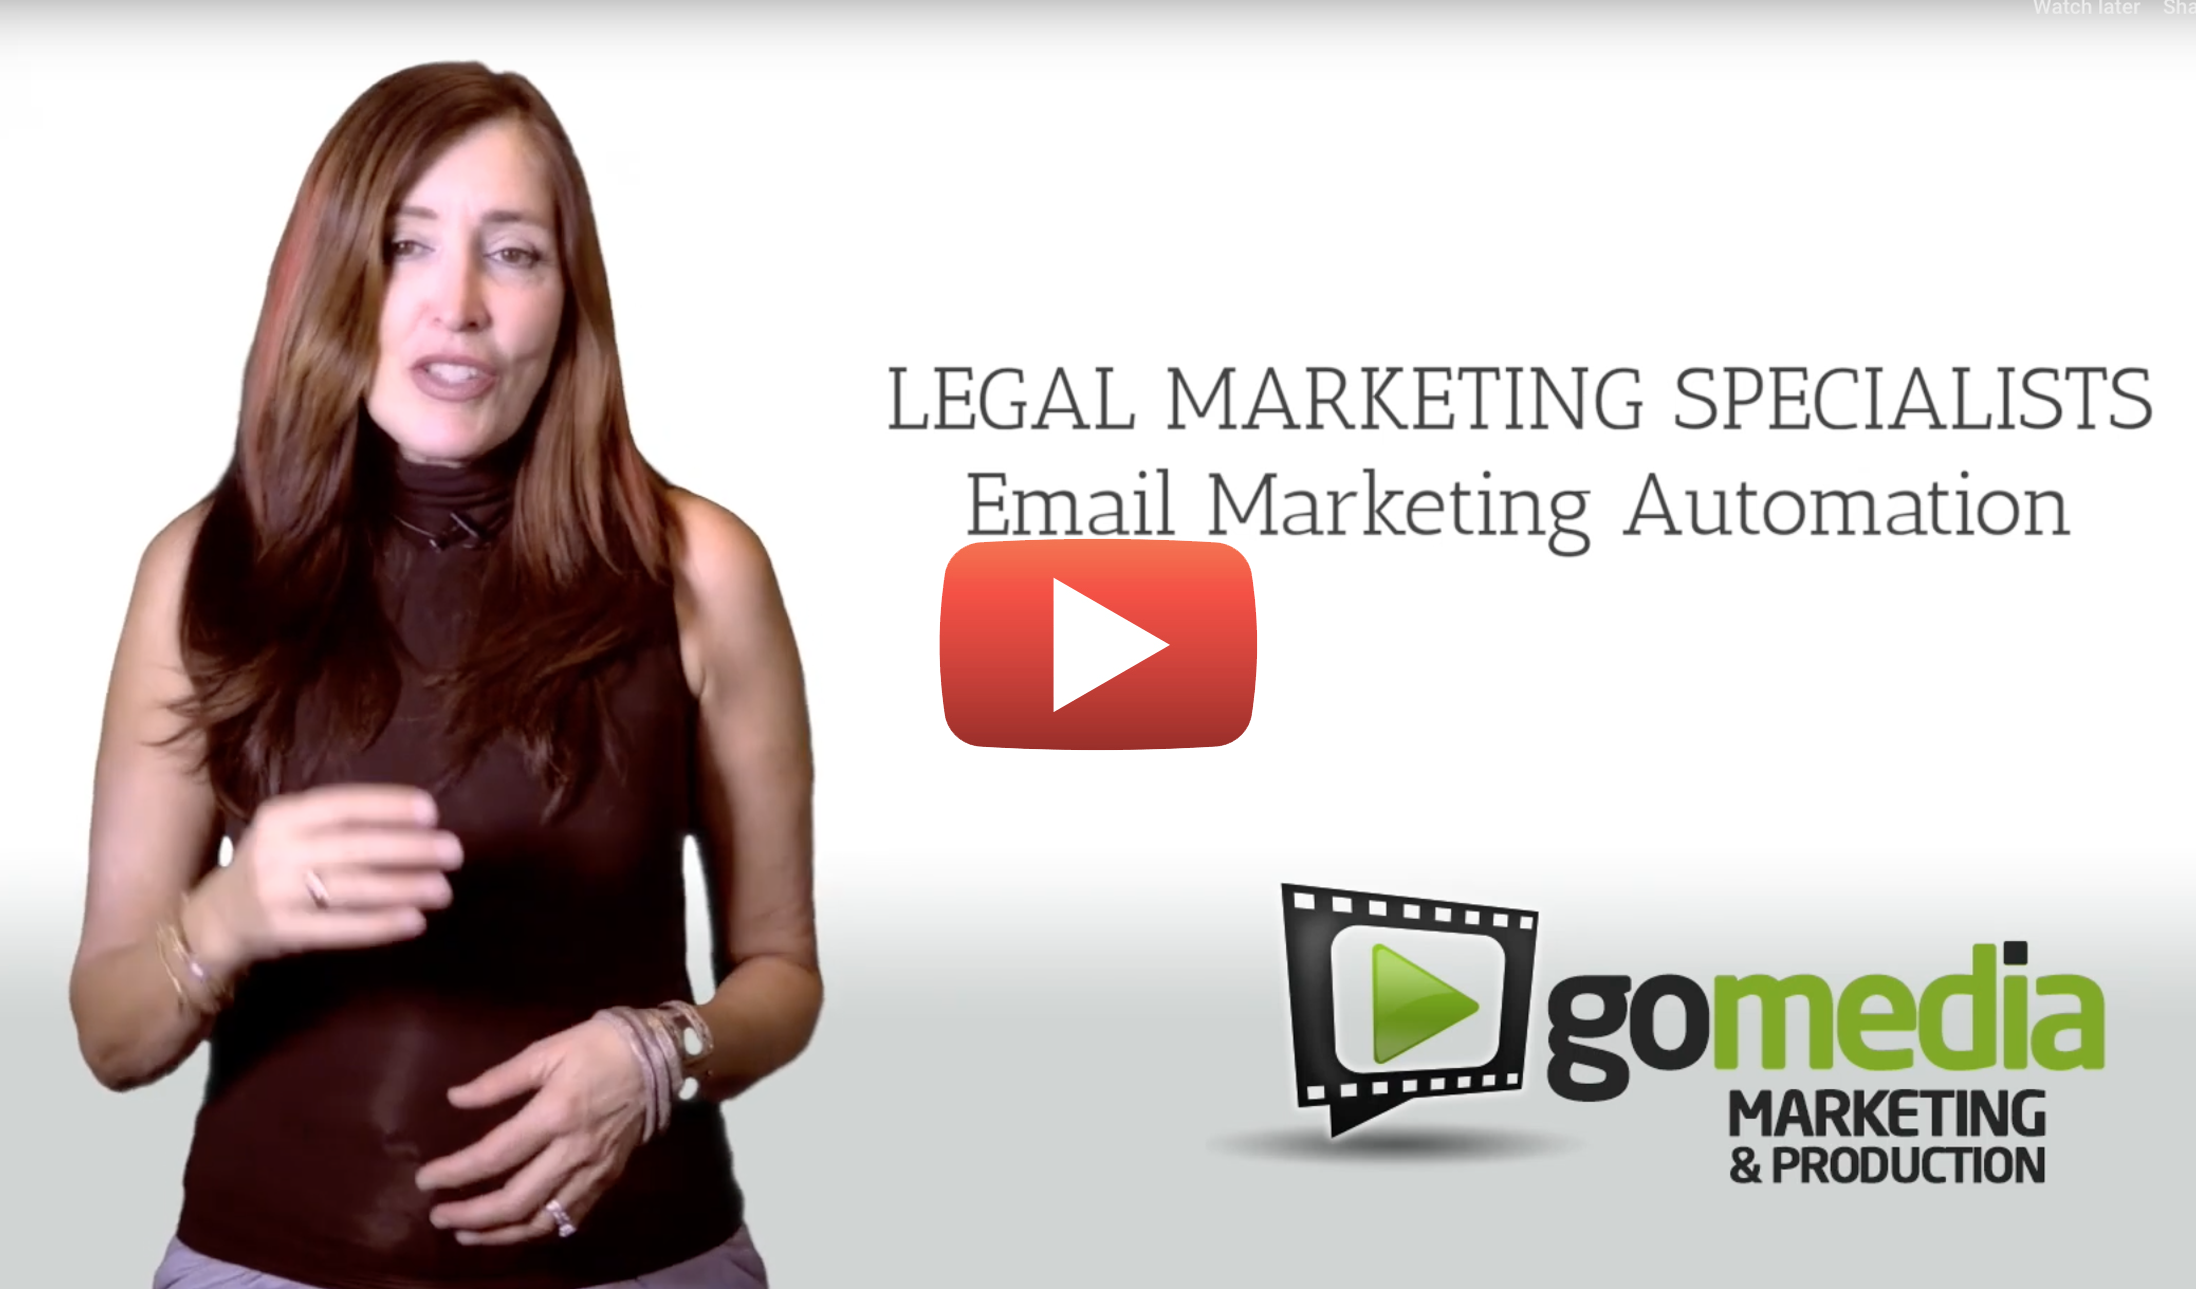 Email Marketing for Lawyers